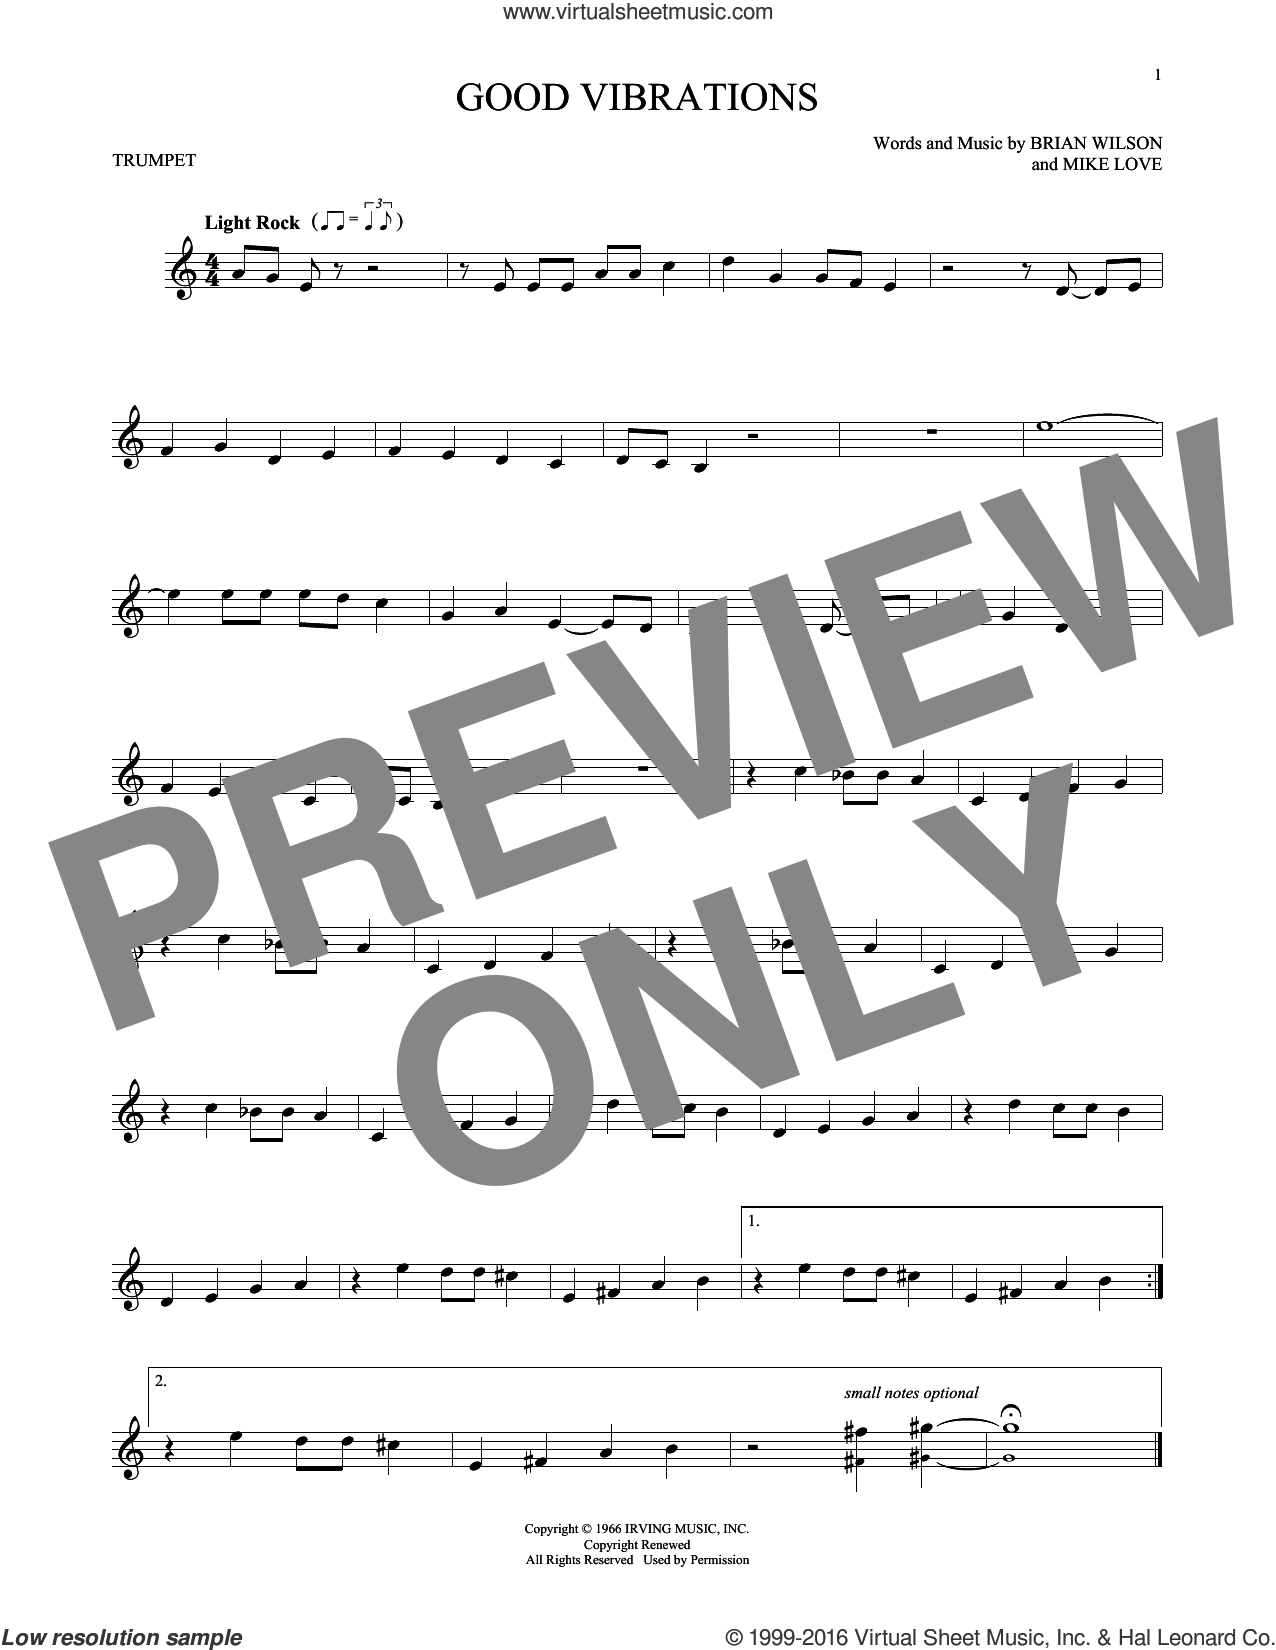 Good Vibrations sheet music for trumpet solo by Mike Love